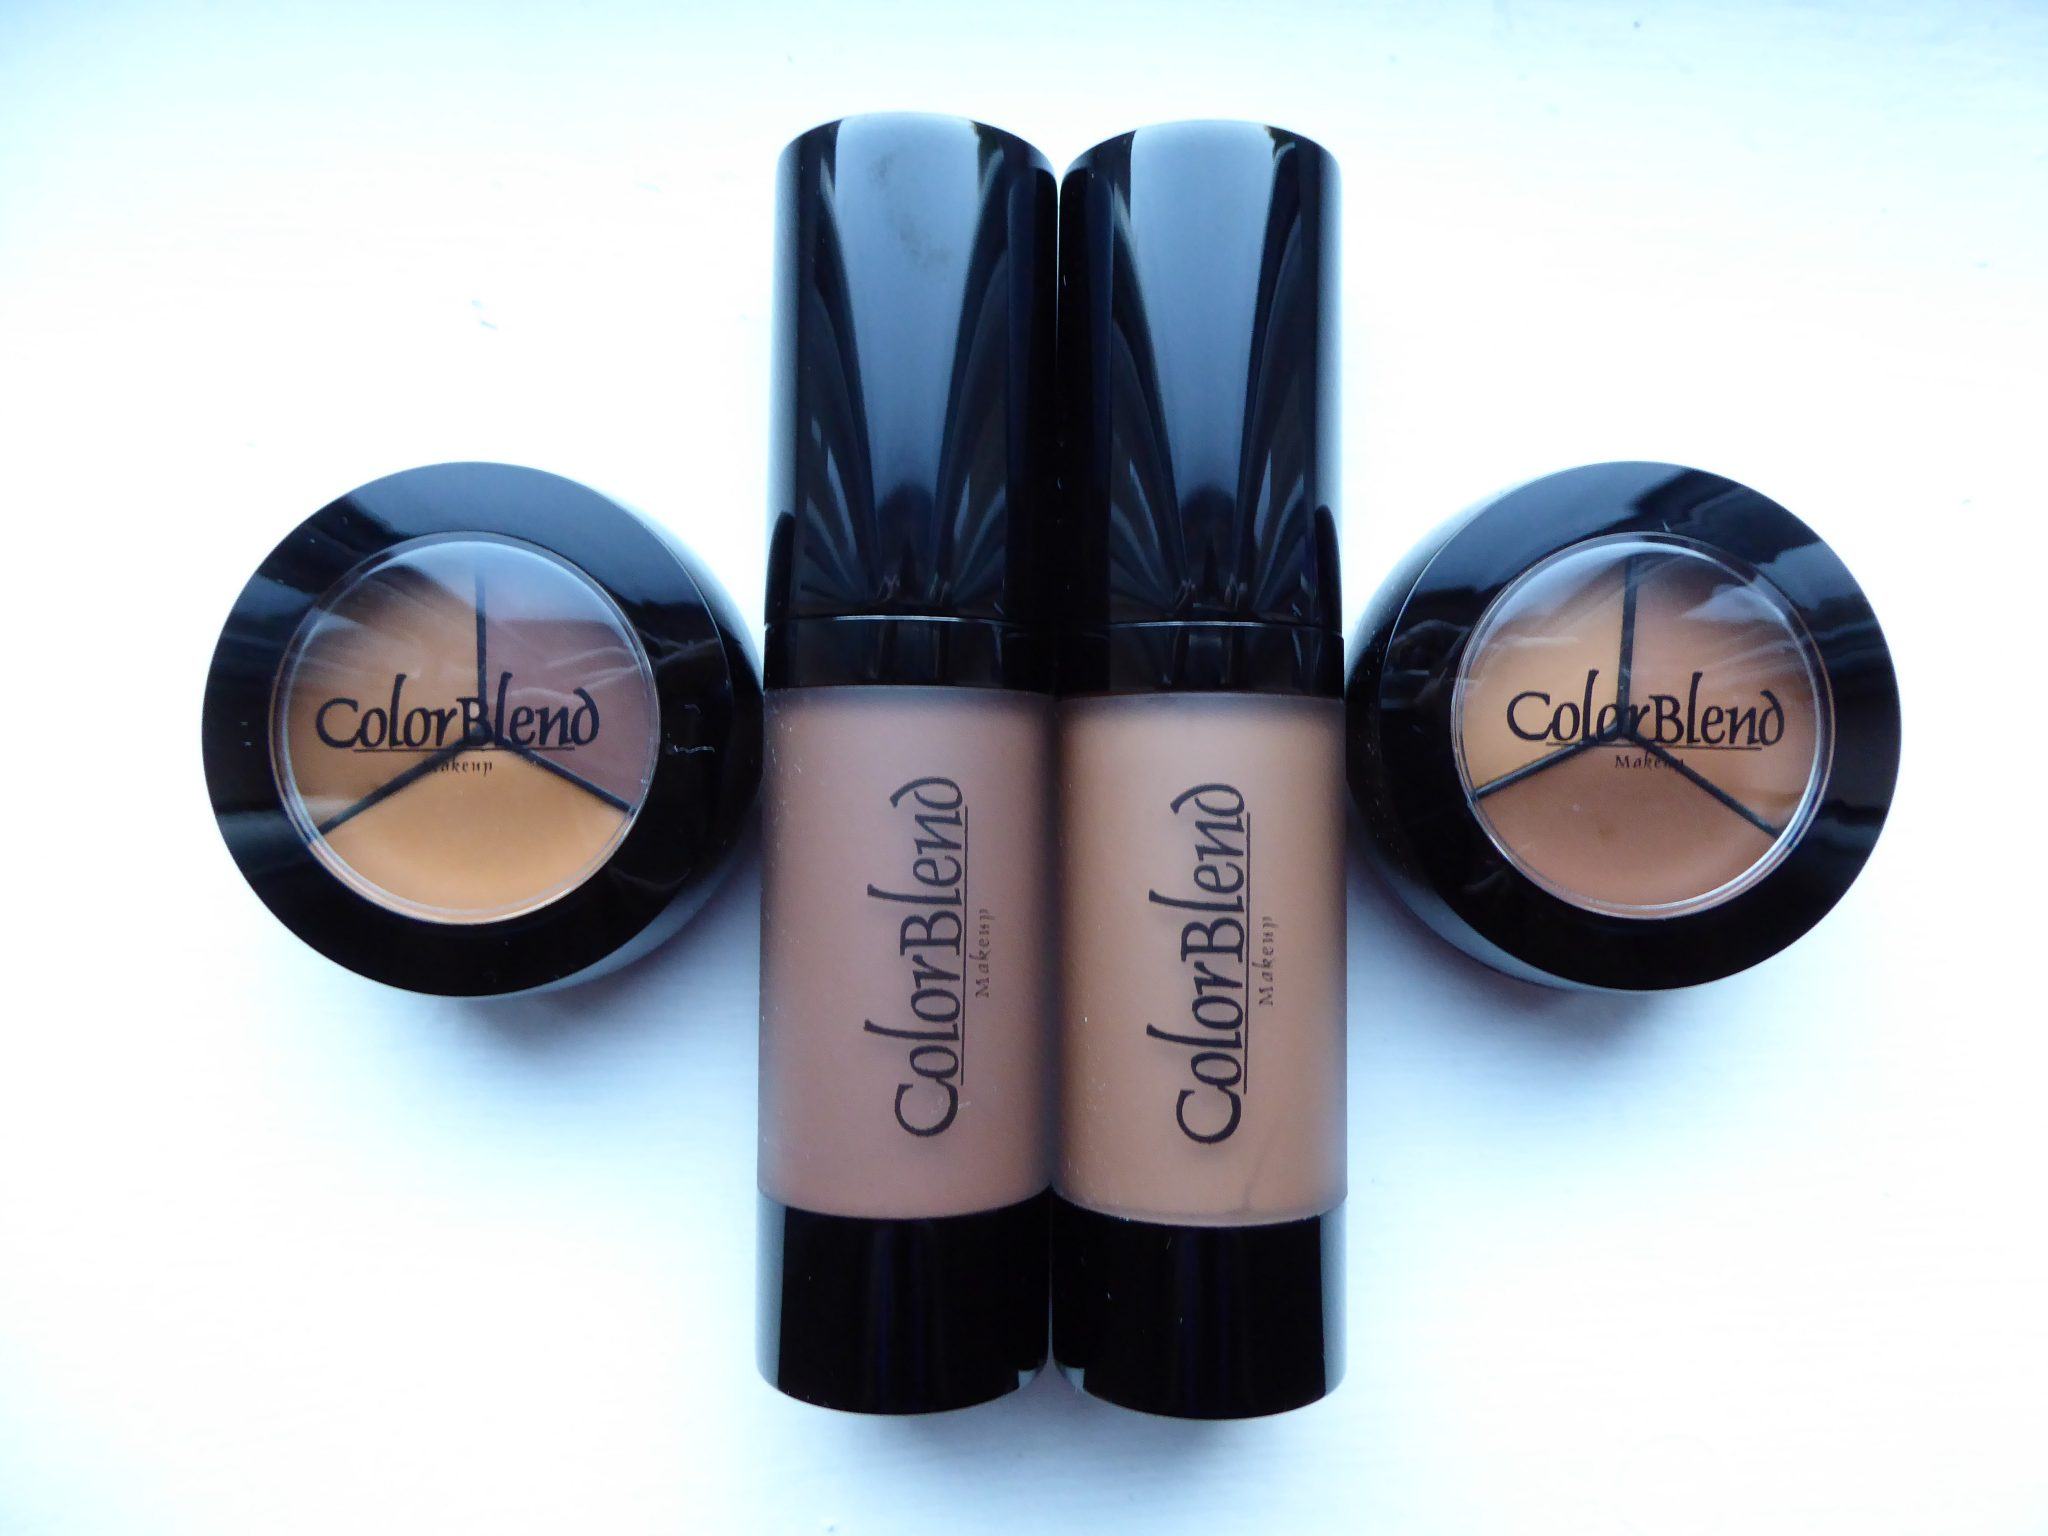 Discovering ColorBlend: A quality makeup brand